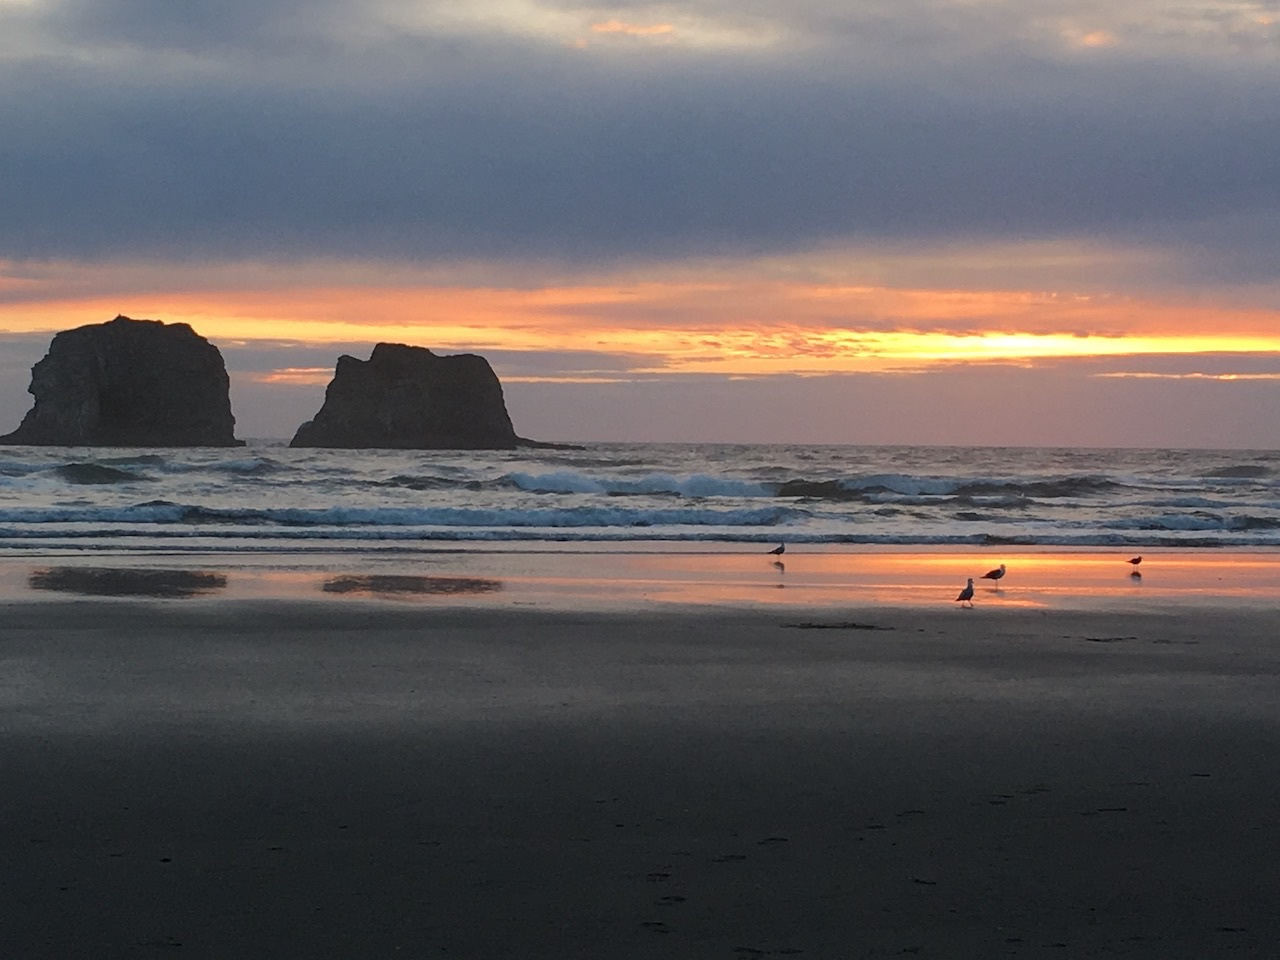 Sunset at Twin Rocks, Oregon